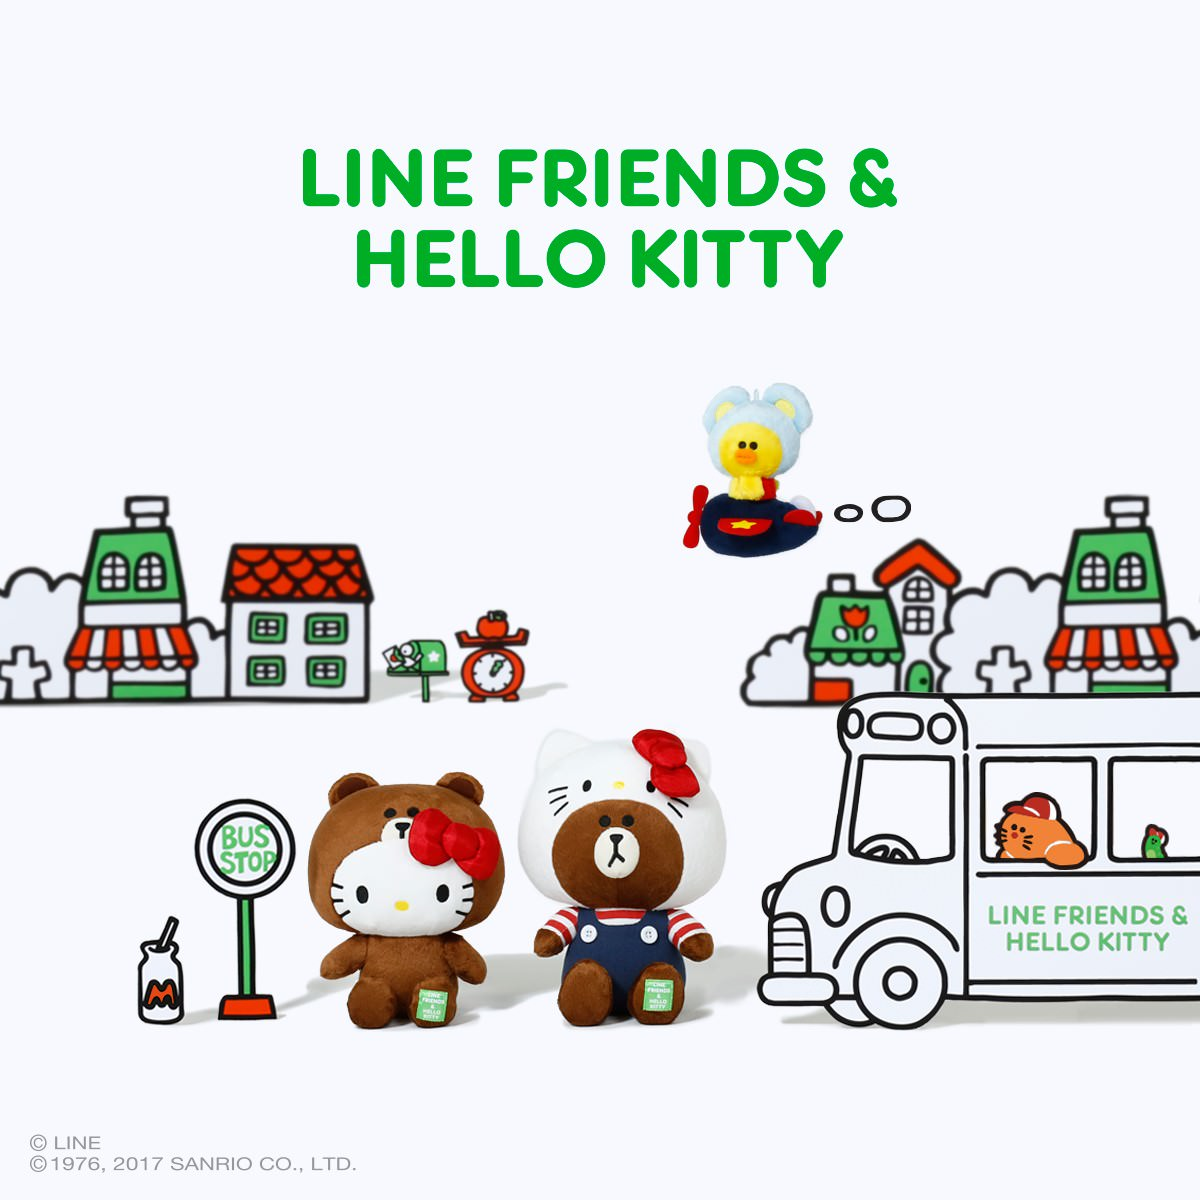 LINE FRIENDS & HELLO KITTY メイン